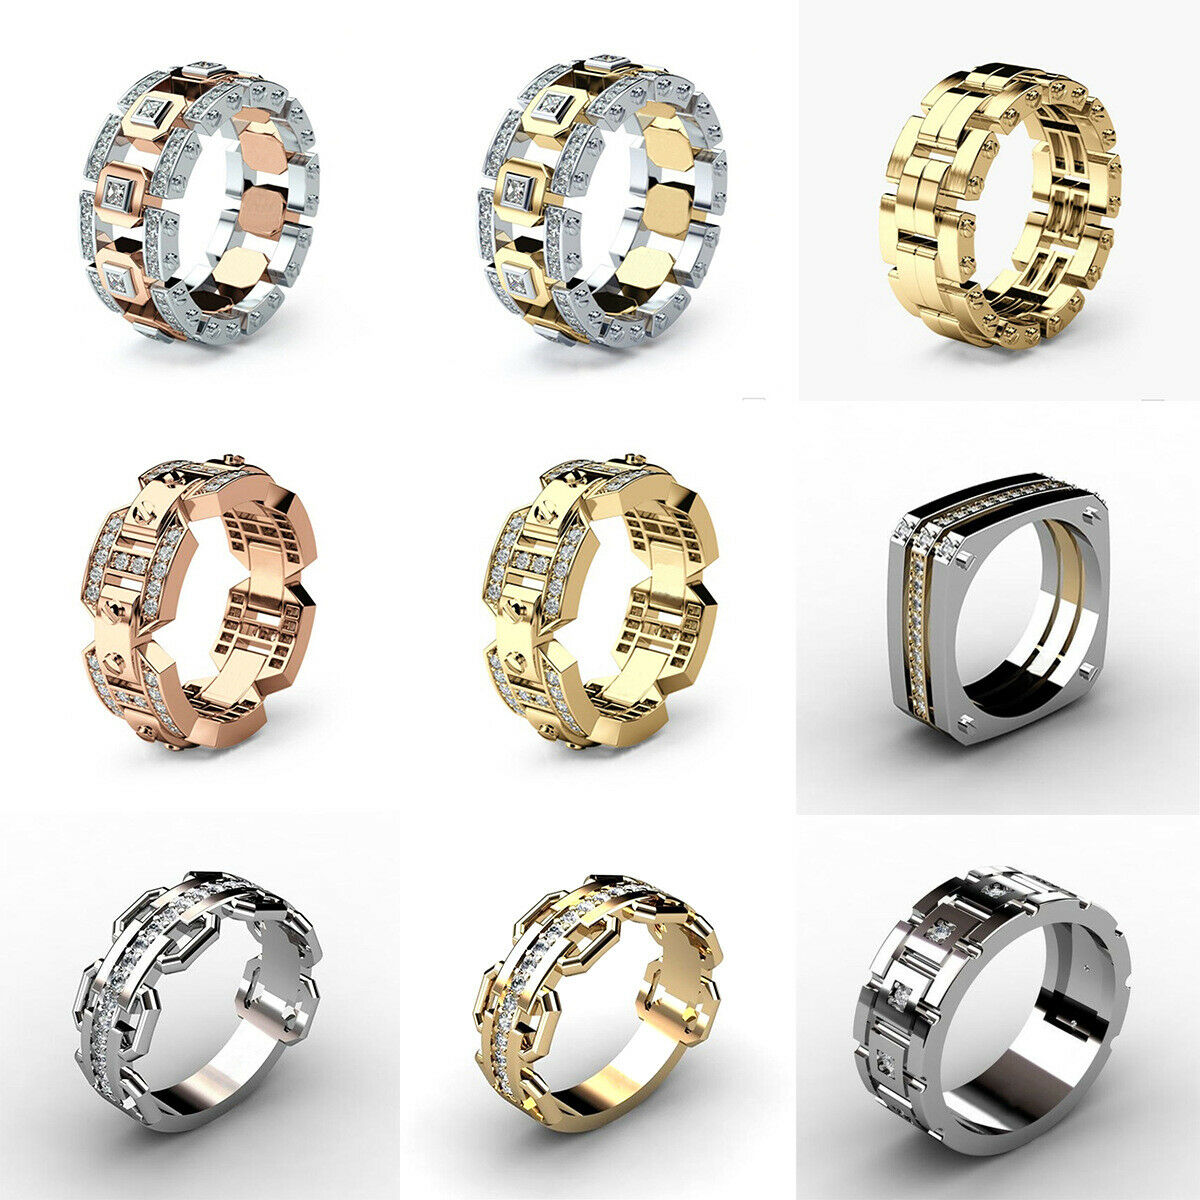 8mm Stainless Steel Black Ring Wedding Band with Beveled Edg